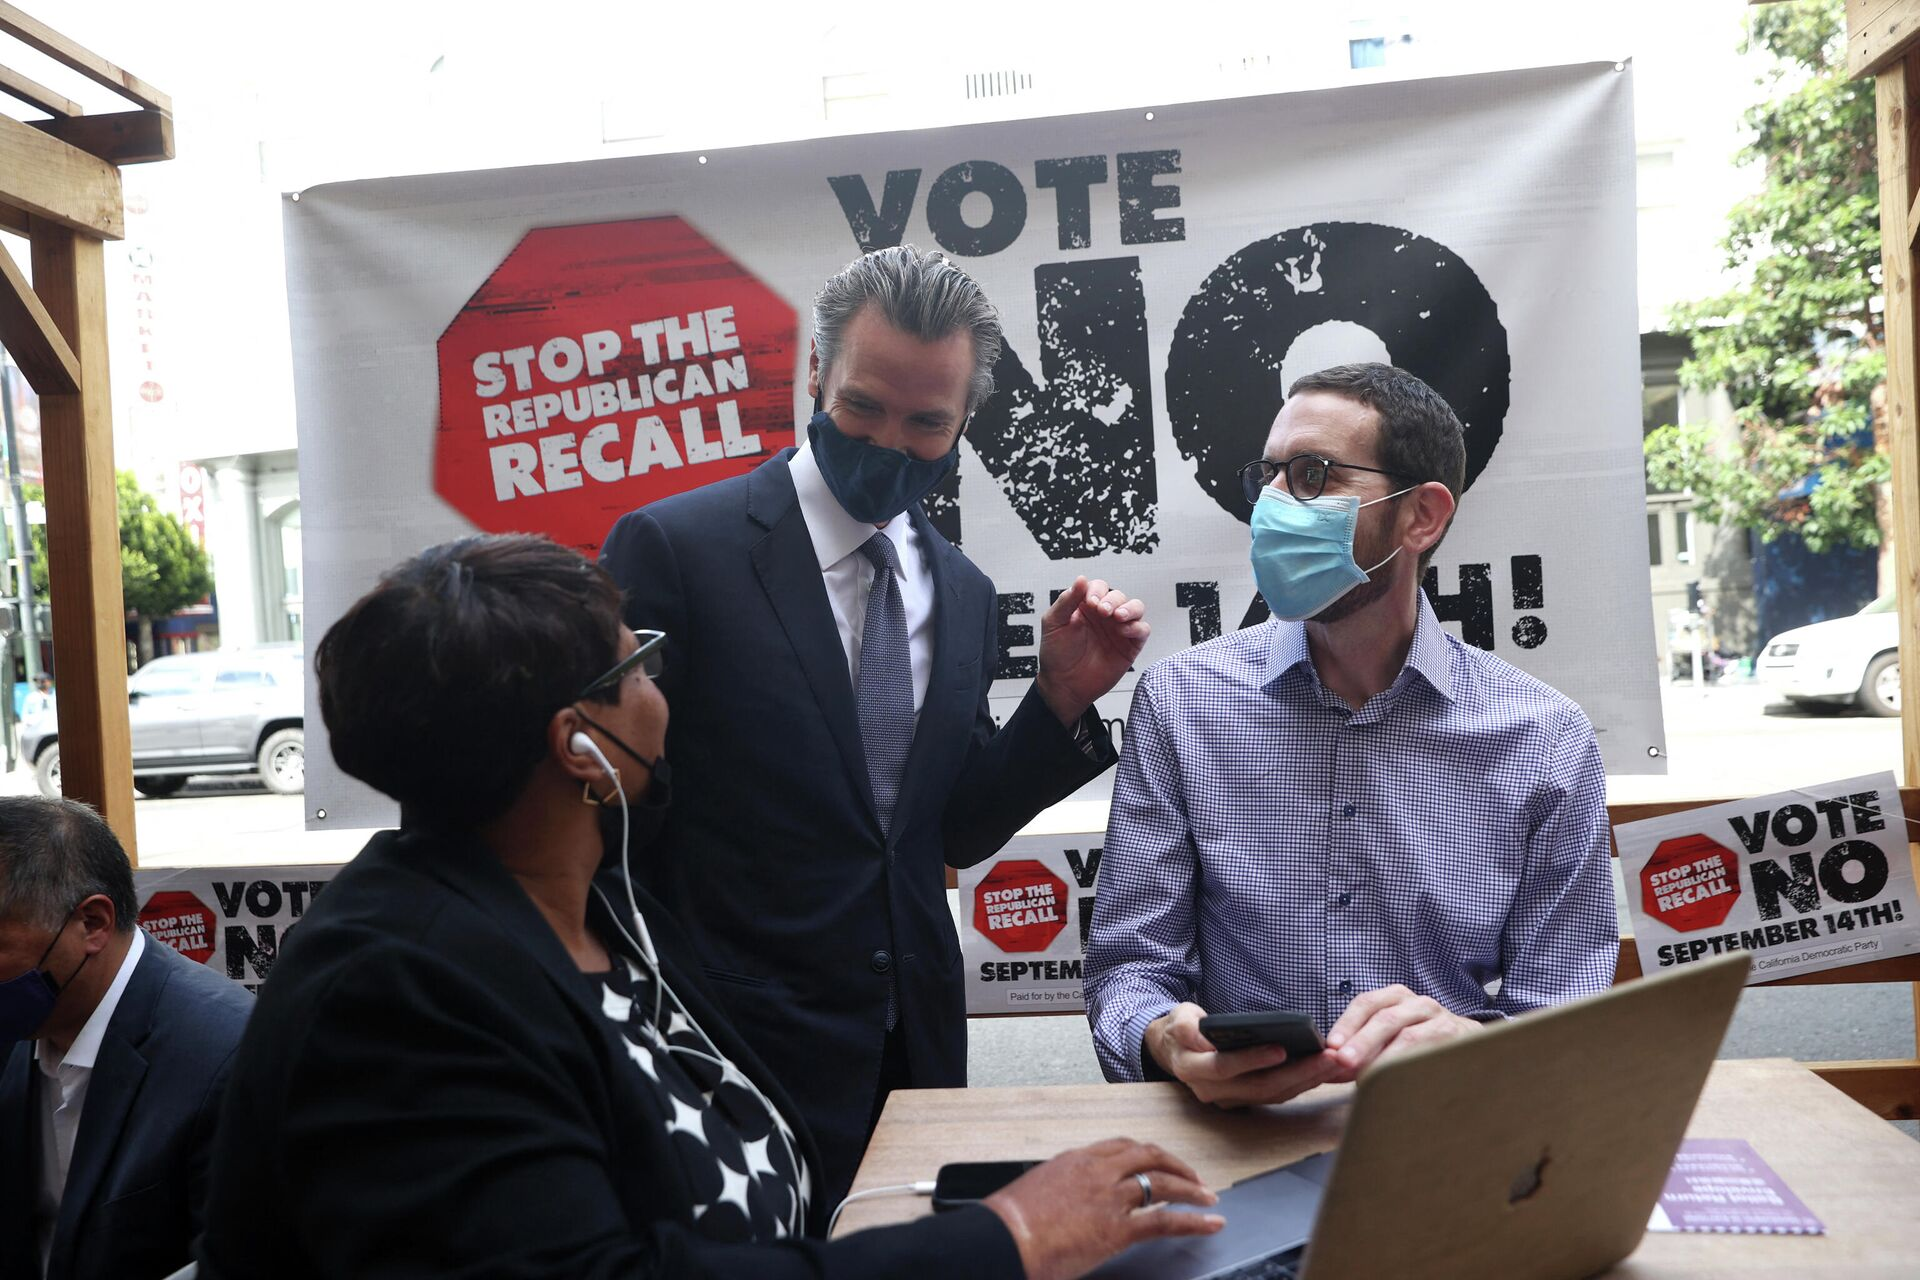 California Gov. Gavin Newsom (C) talks with California State Sen. Scott Wiener (R) and a volunteer (L) who is phone banking against the recall at Manny's on August 13, 2021 in San Francisco, California. California Gov. Gavin Newsom kicked off his Say No to recall campaign as he prepares to face a recall election on September 14 - Sputnik International, 1920, 14.09.2021